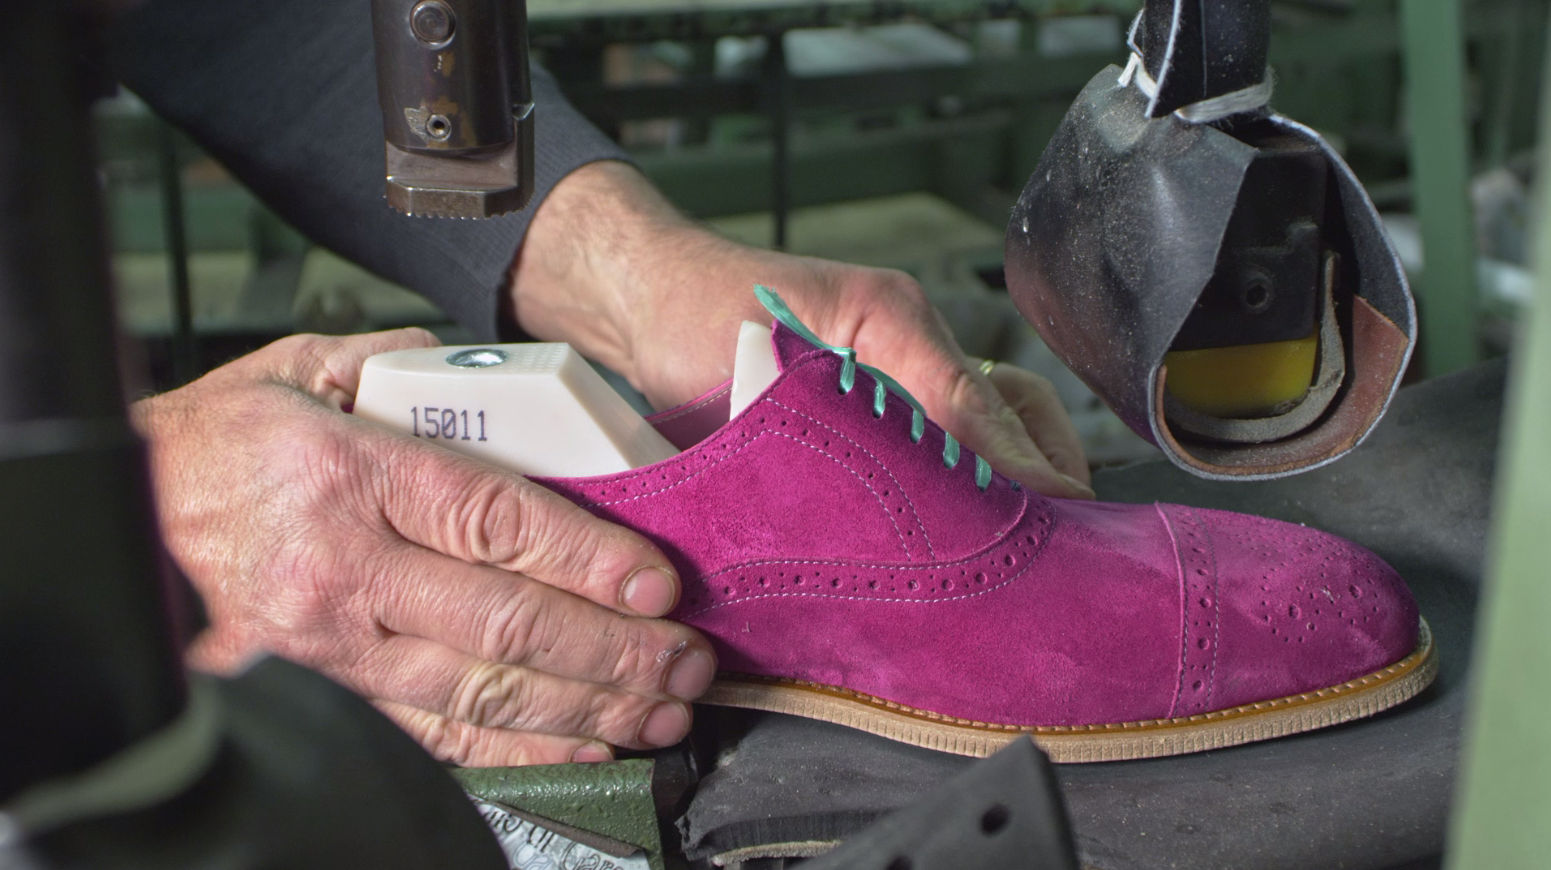 The pink Witney men's Oxford shoe being made in the factory. The shoe is being held at the heel by a craftsman.